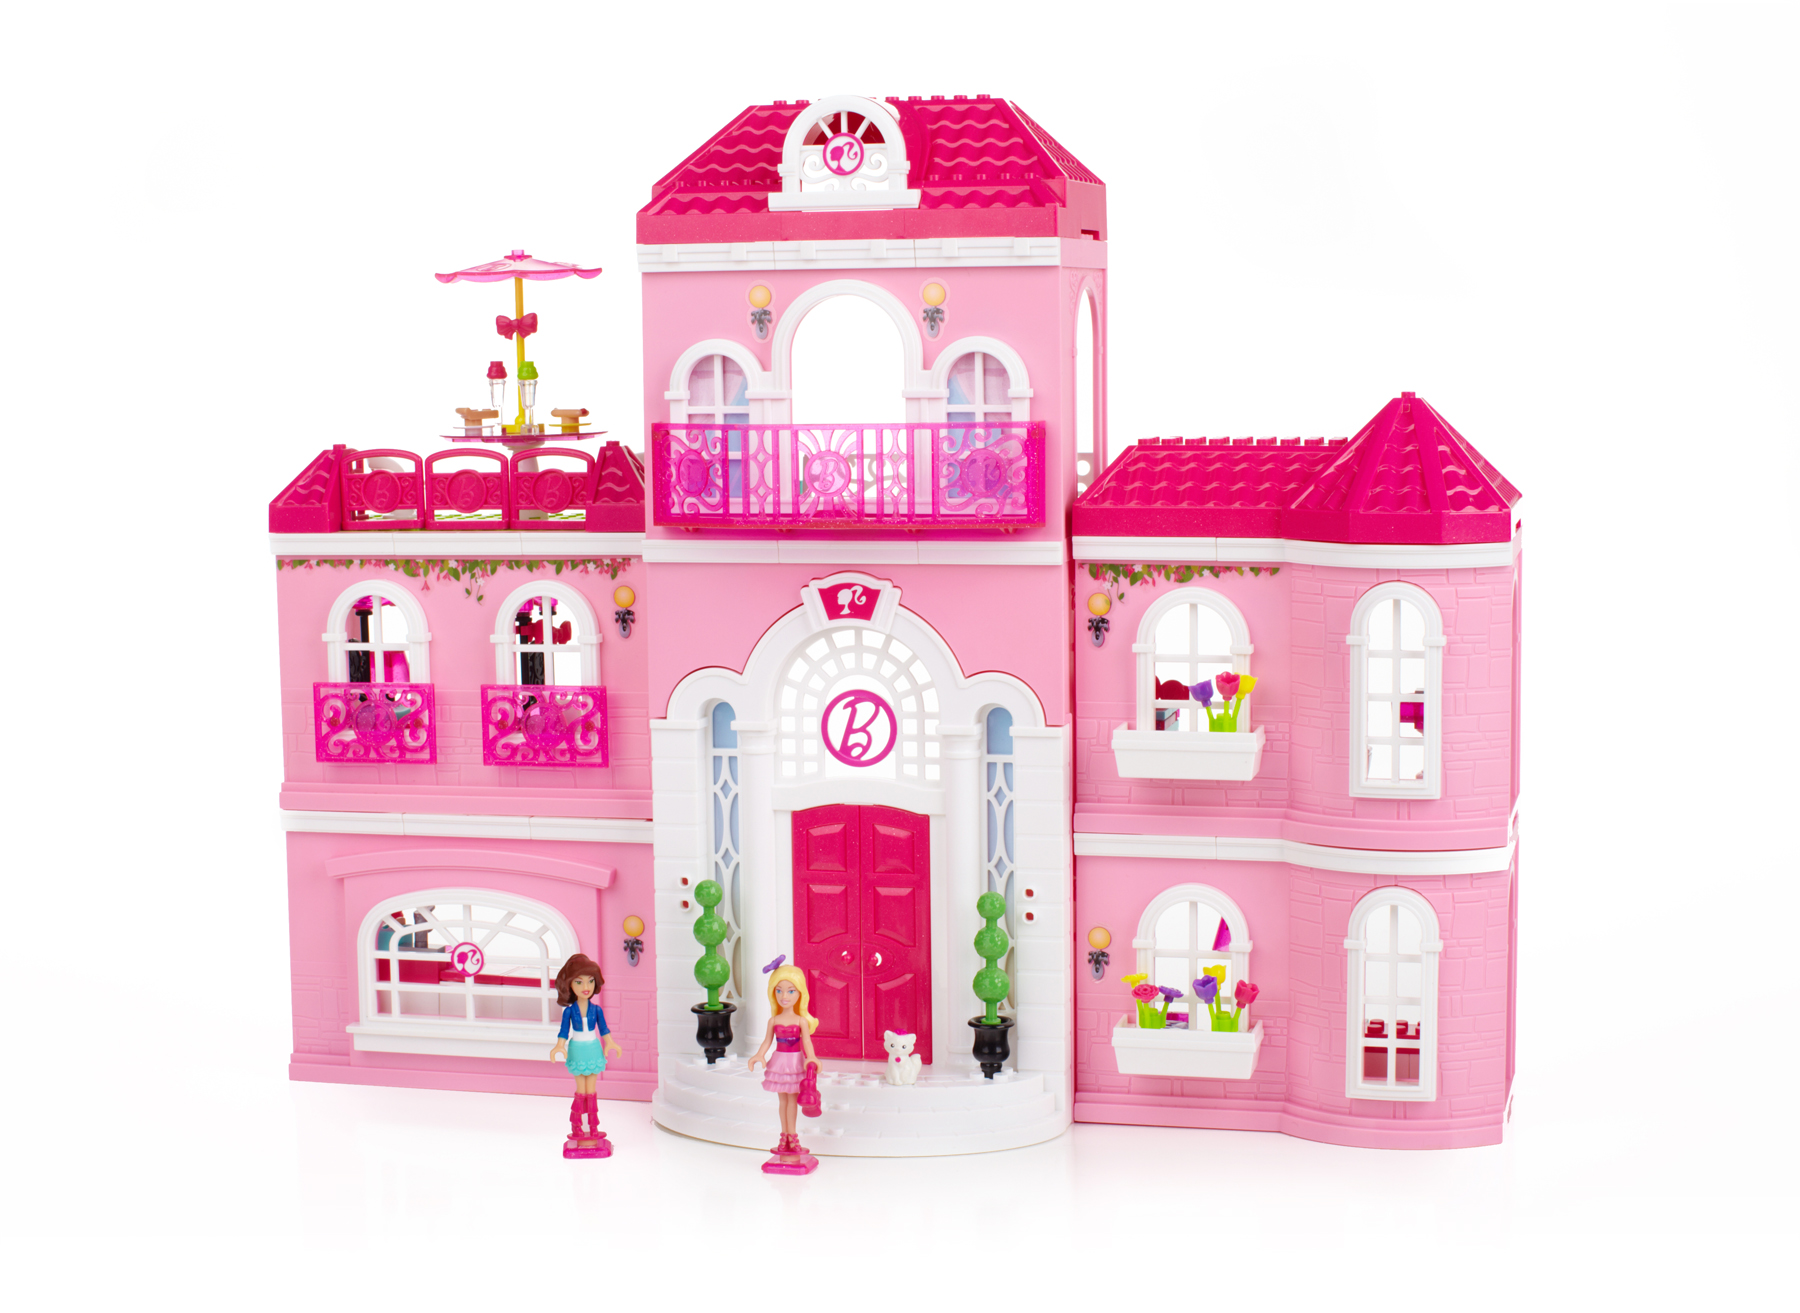 House Toys For Girls : You saw it on moms christmas giveaway bash webcast